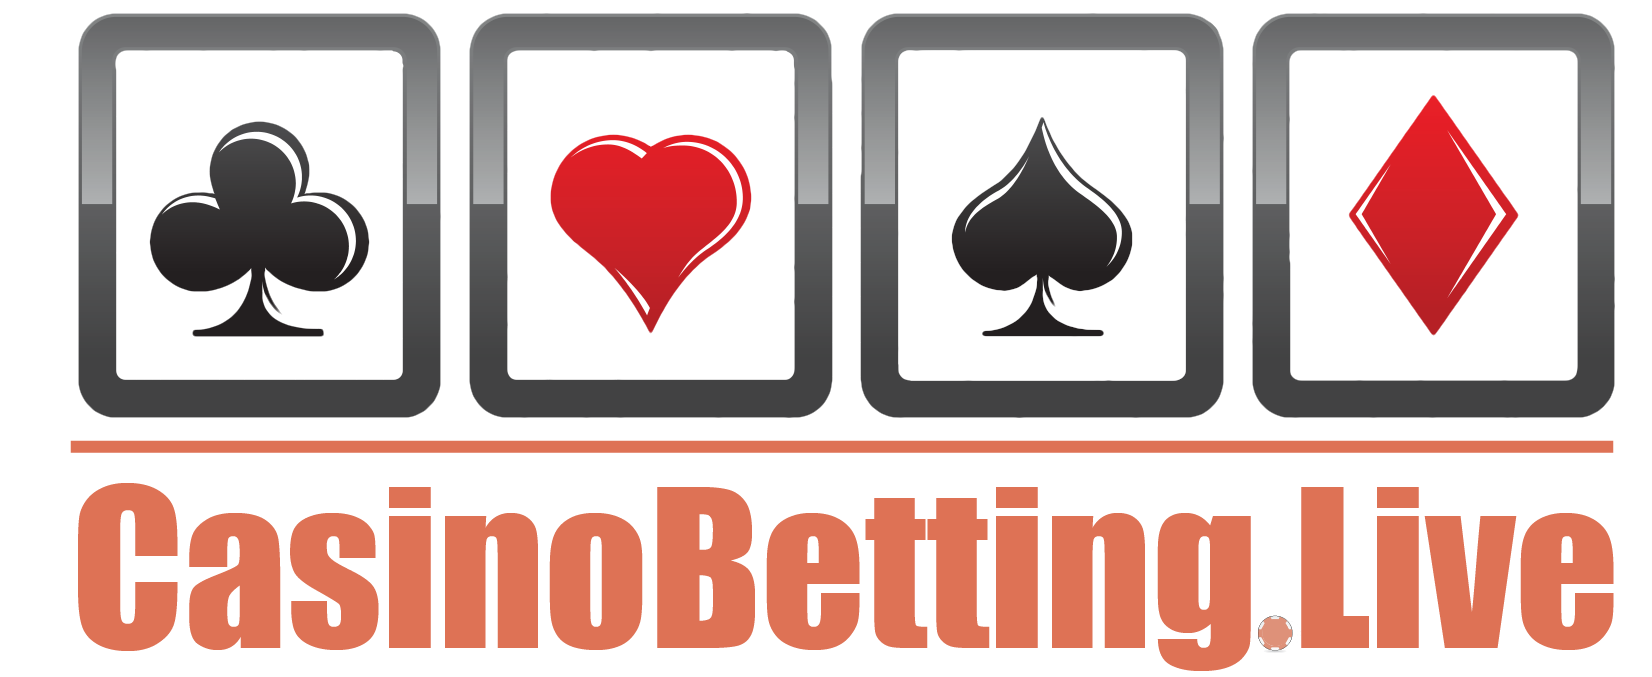 CasinoBetting.Live